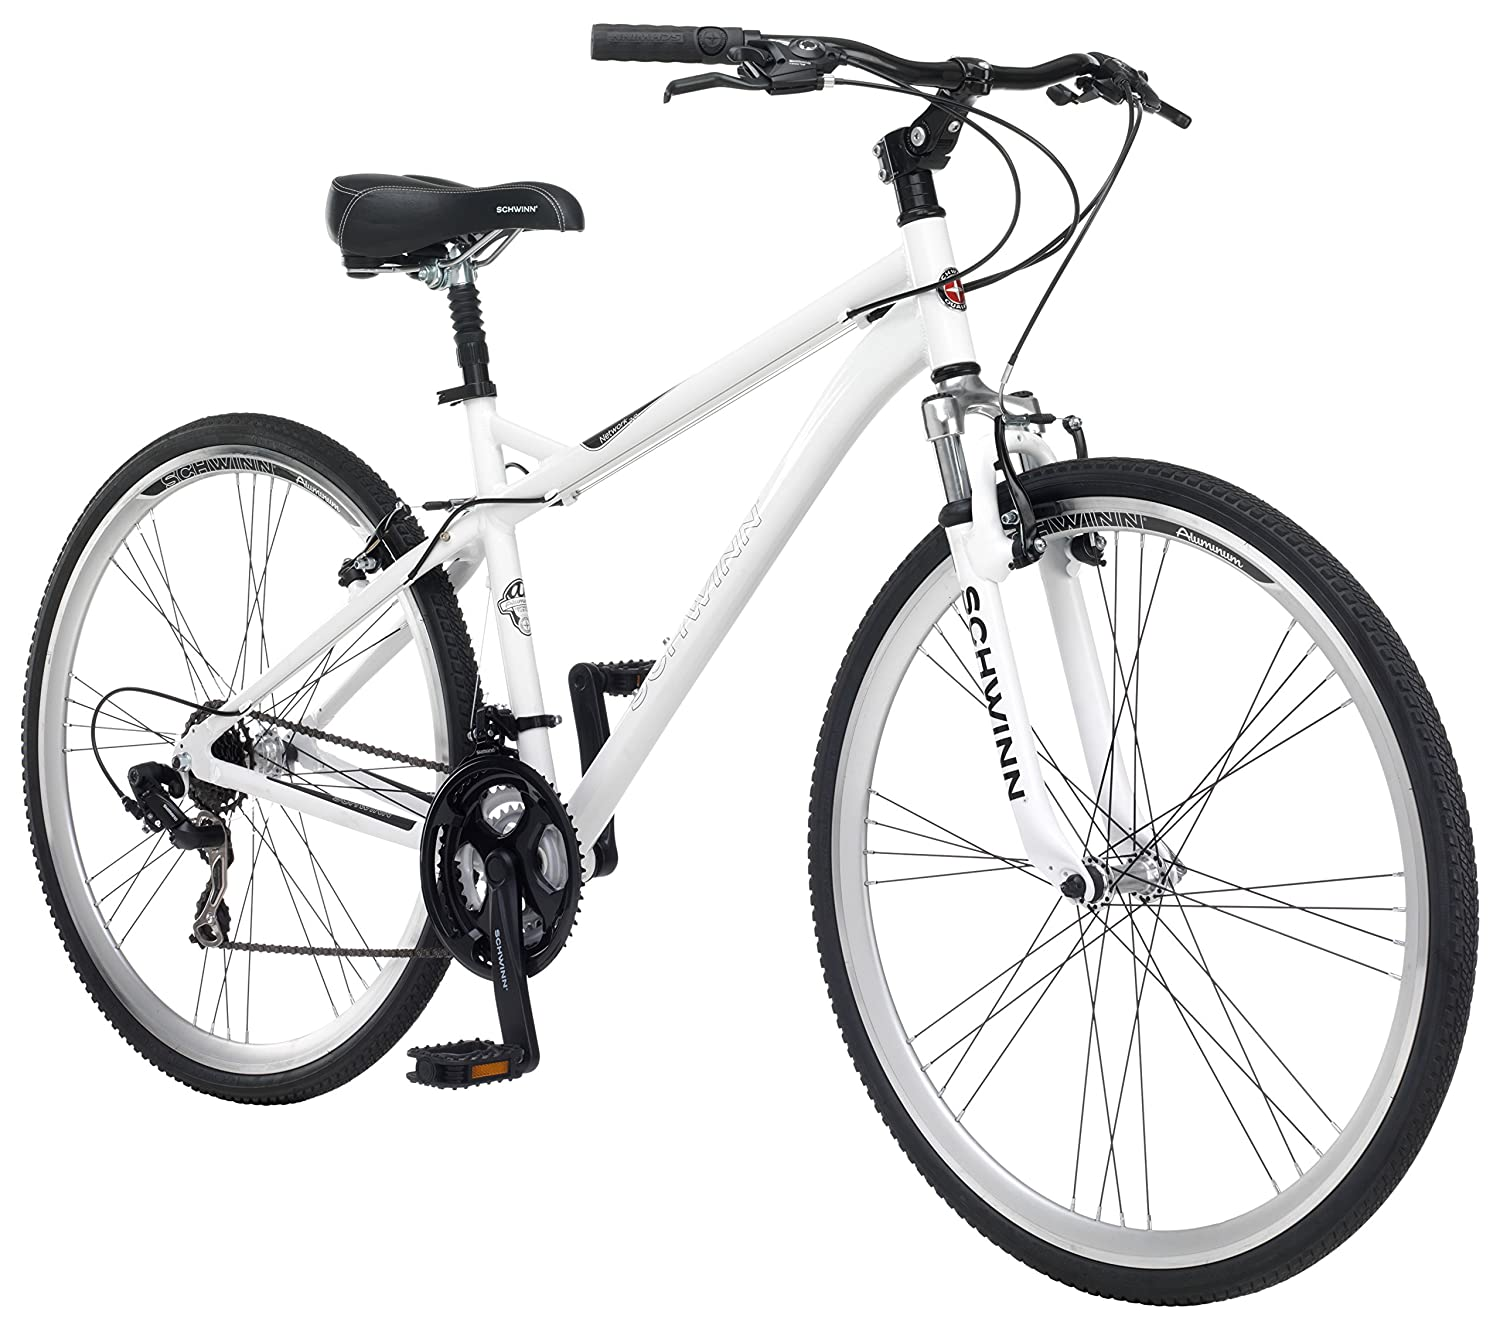 Best Hybrid Bikes Reviews The bike gets an average